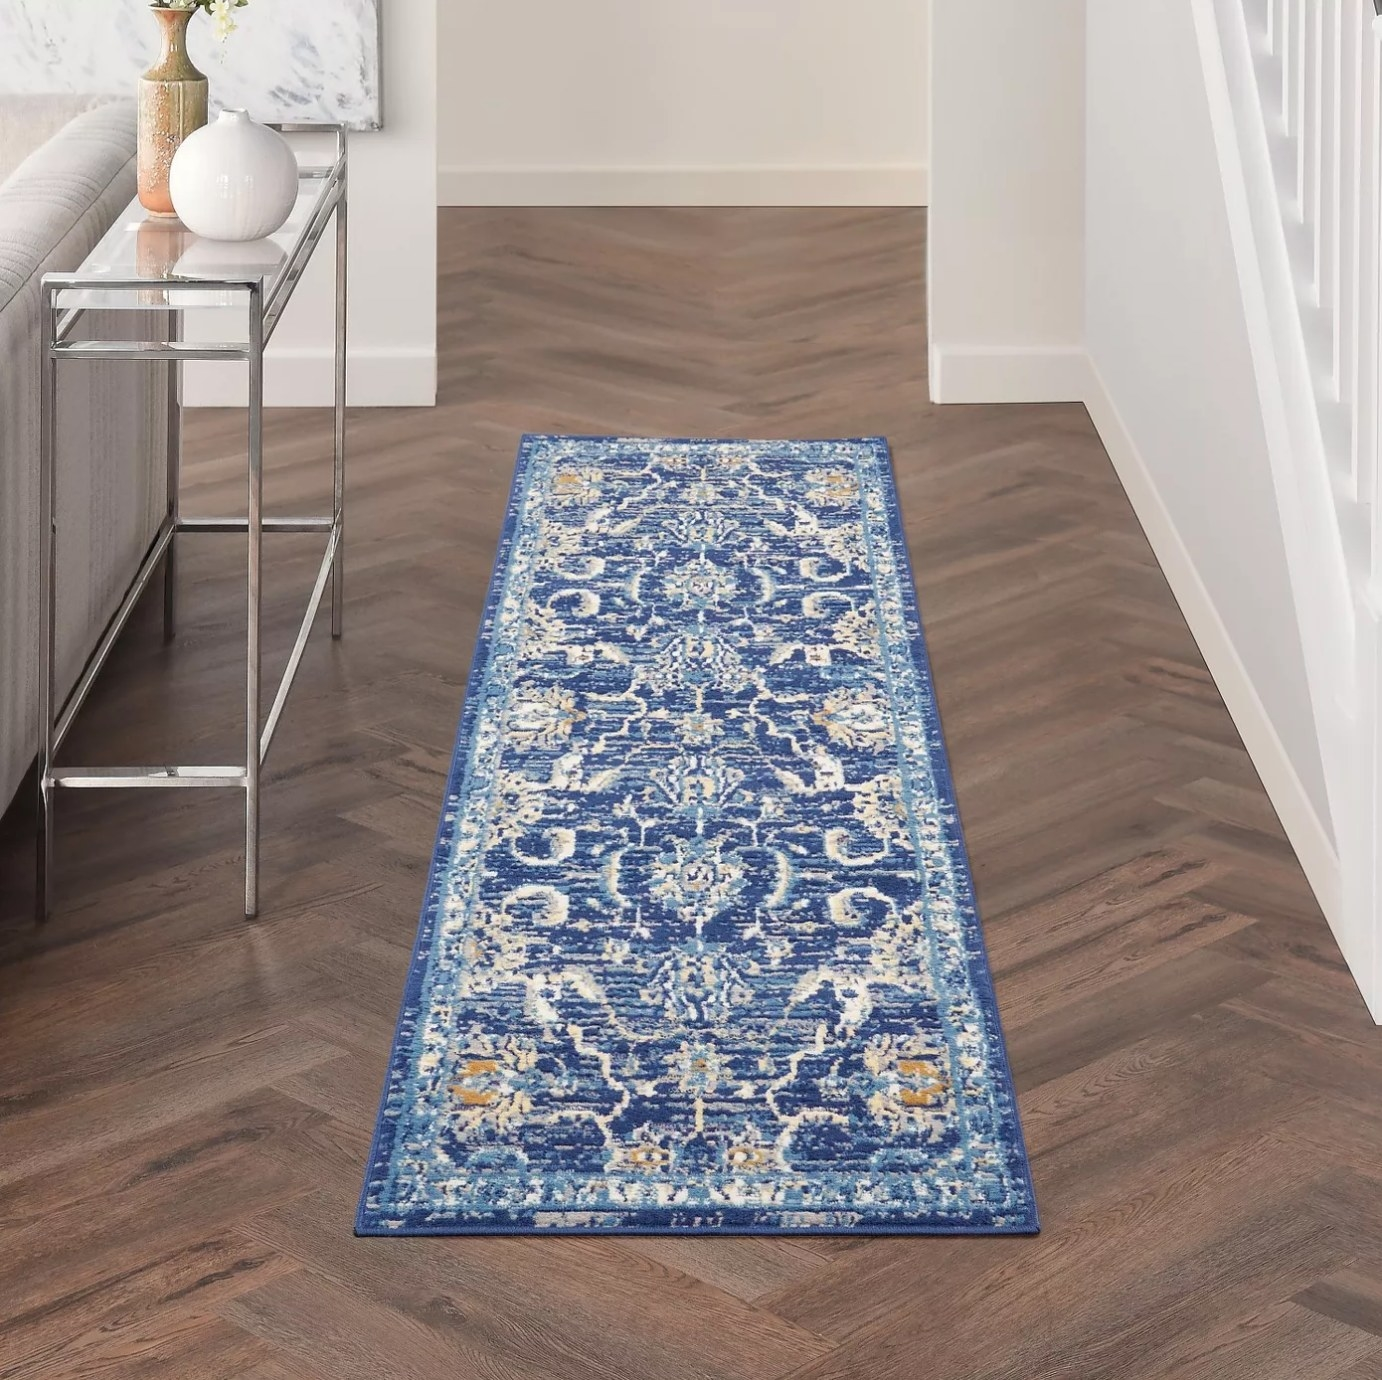 The area rug in blue